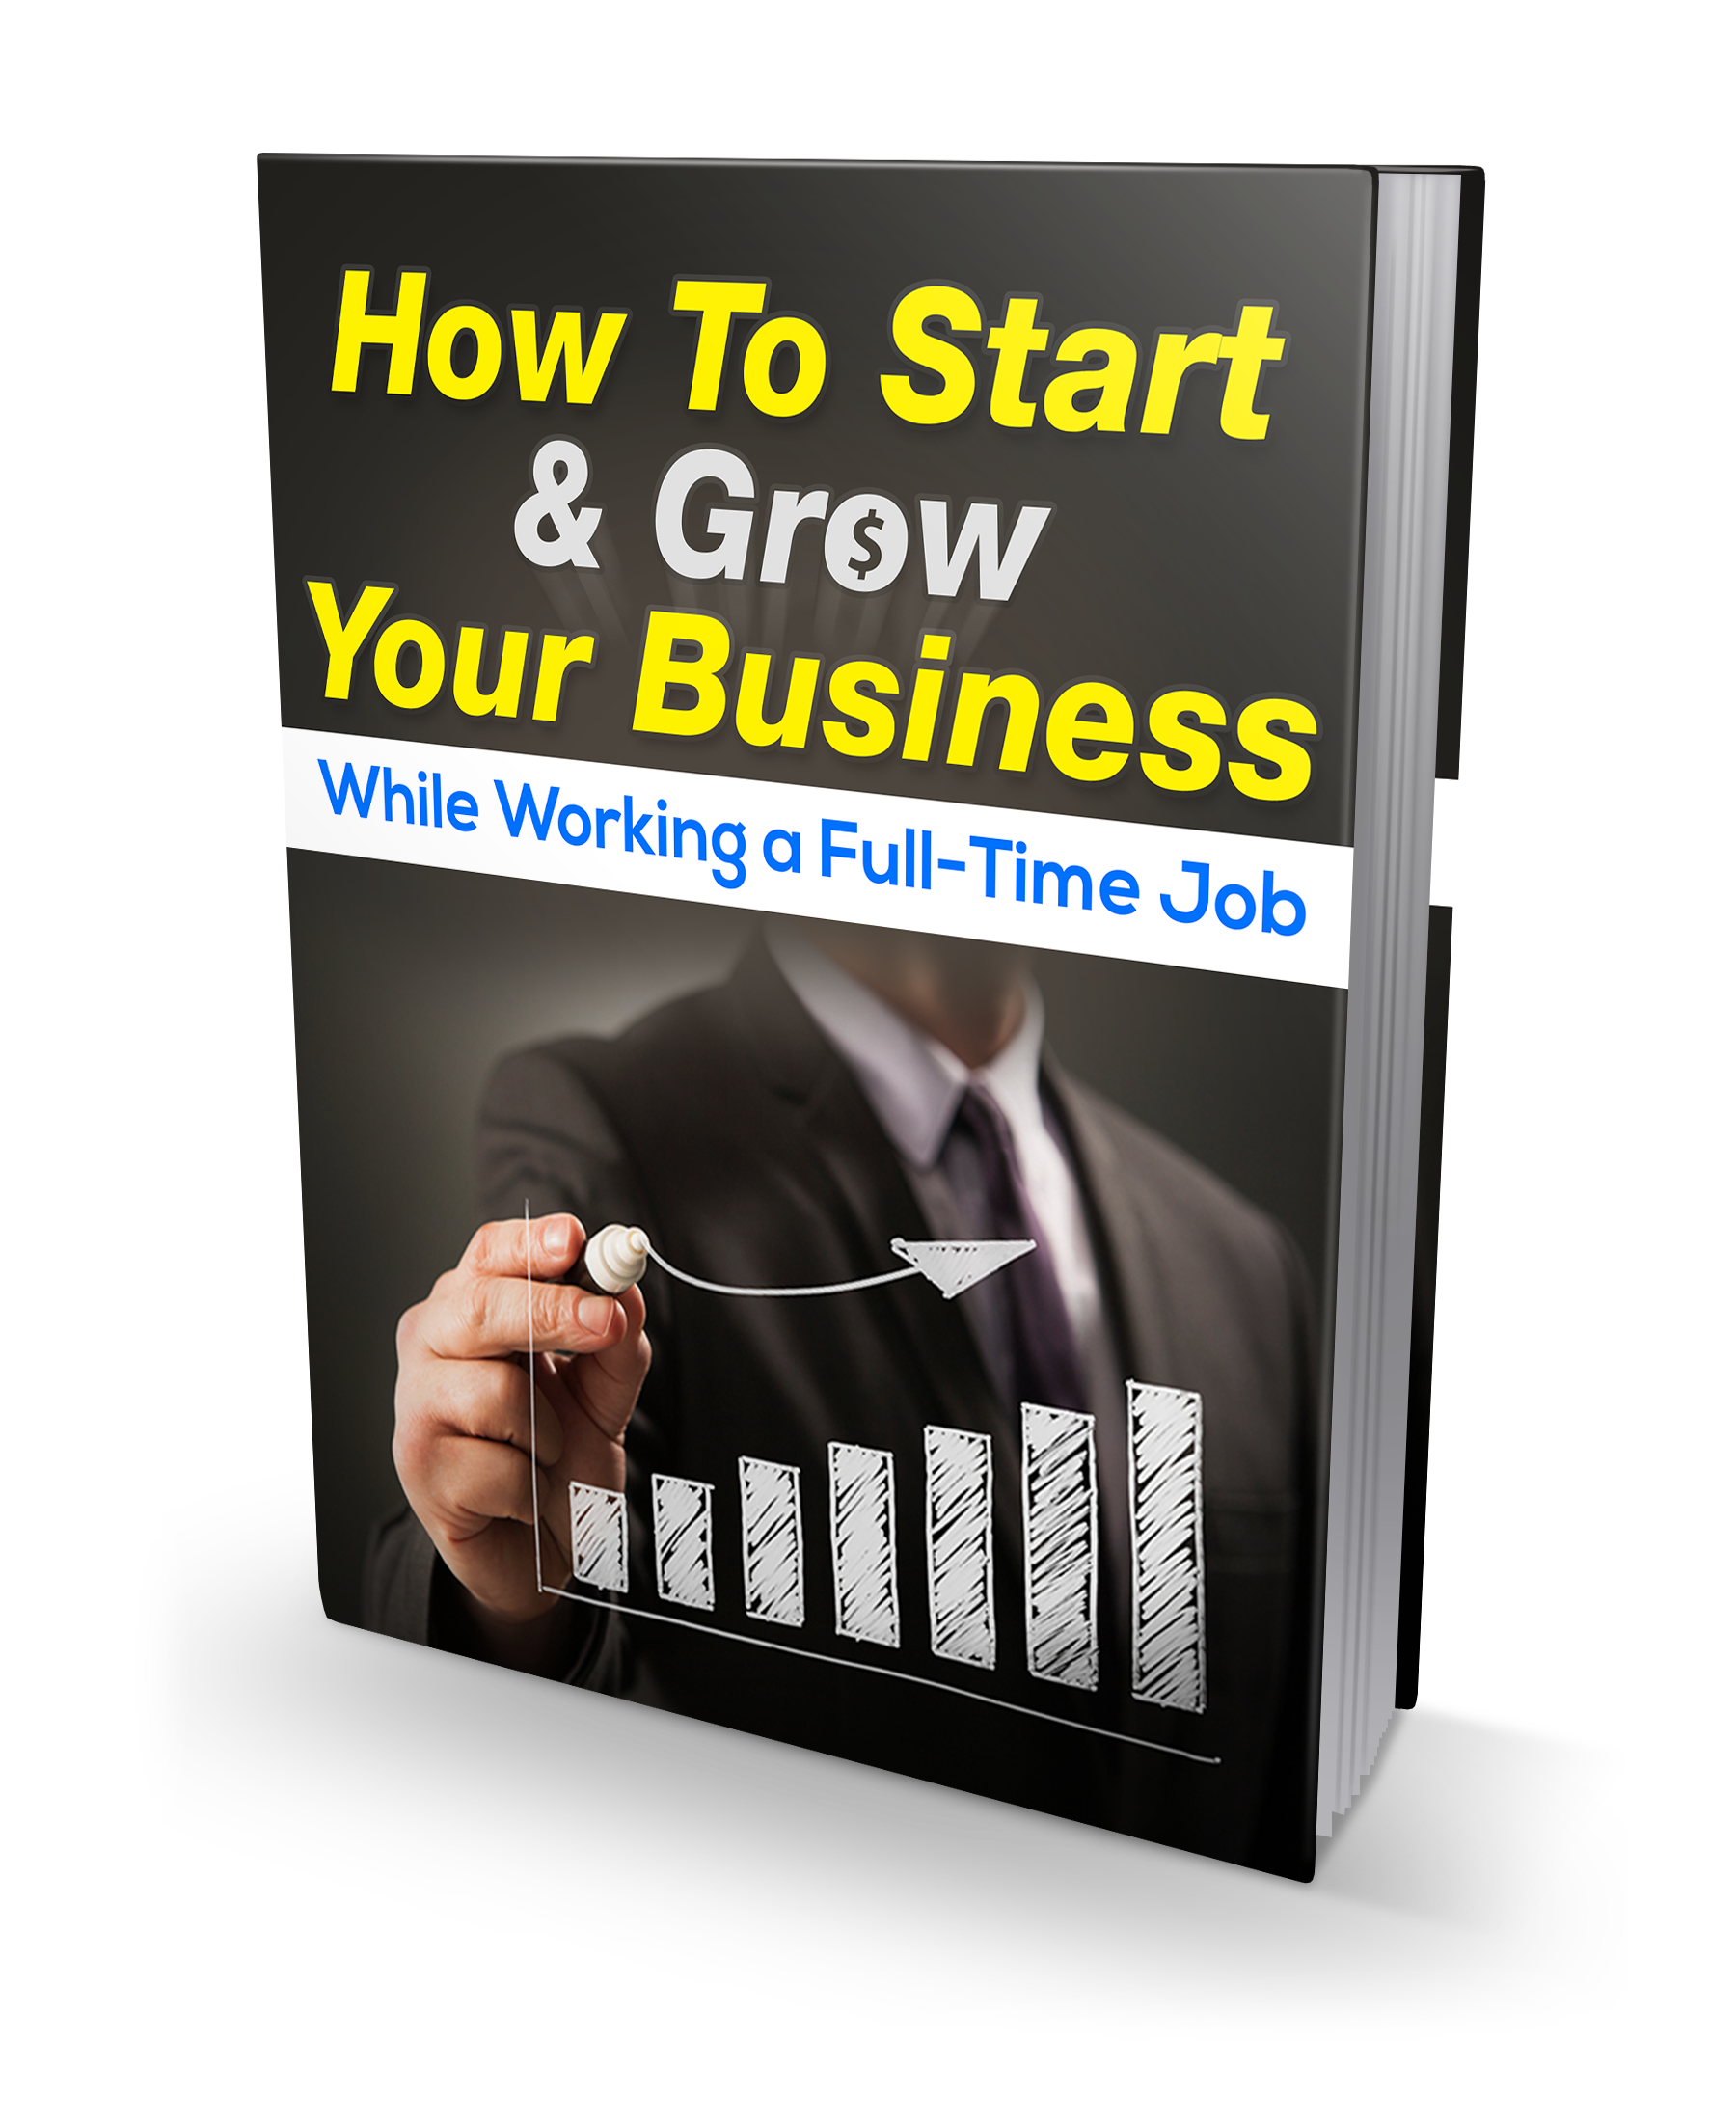 How To Start & Grow Your Business While In a Full-Time Job With 101 Business Ideas and Opportunities